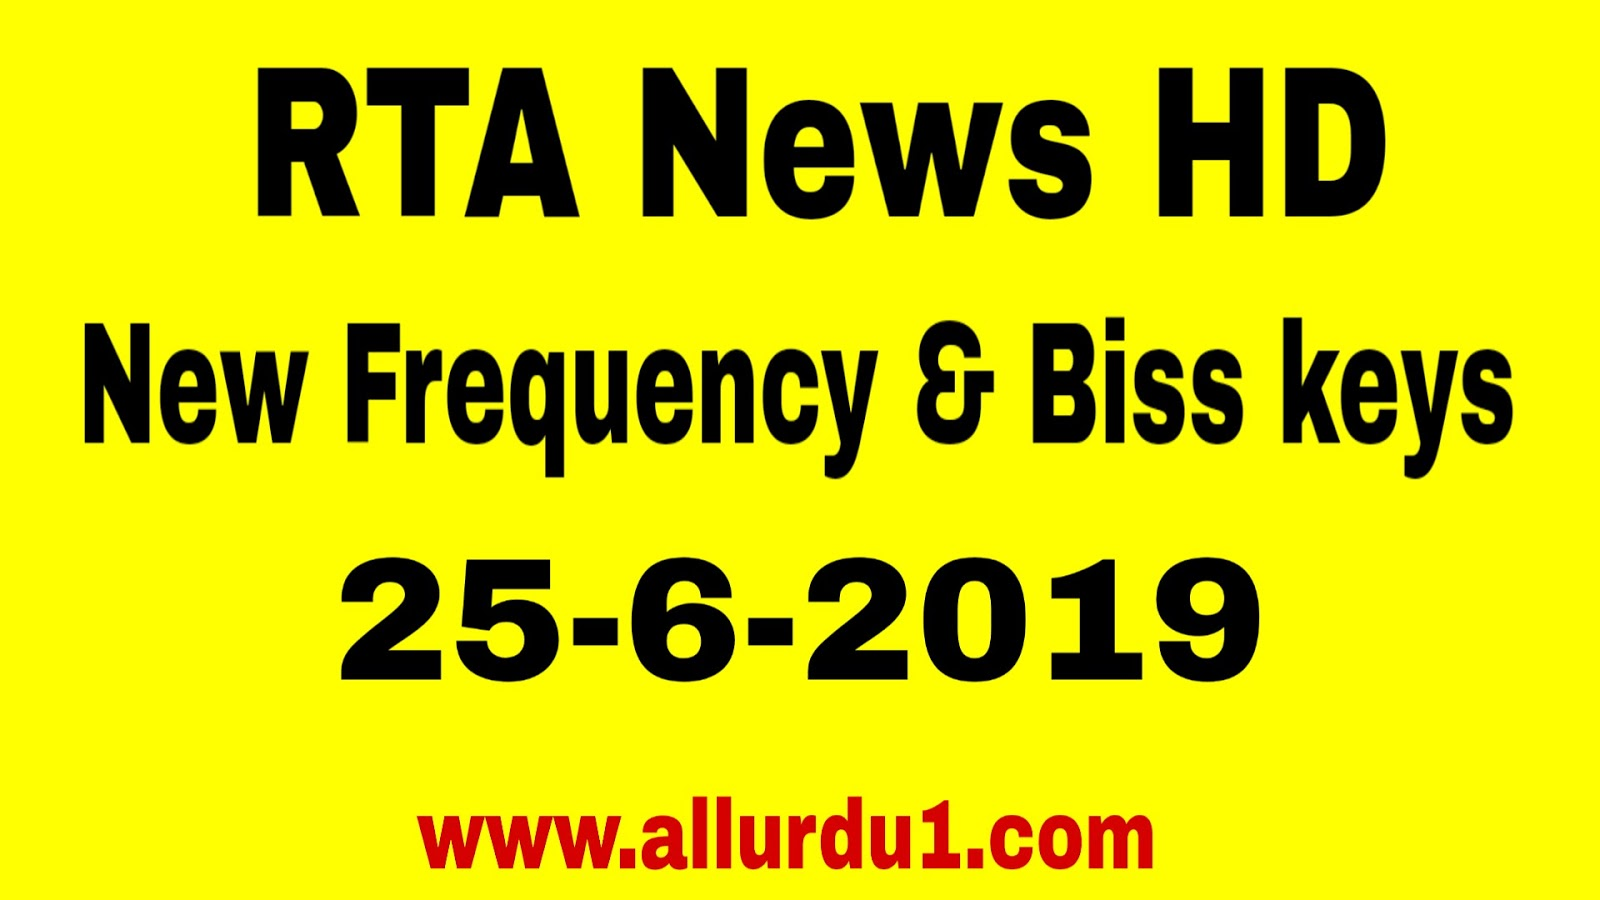 RTA NEWS HD New Frequency and Biss keys 25 jun 2019